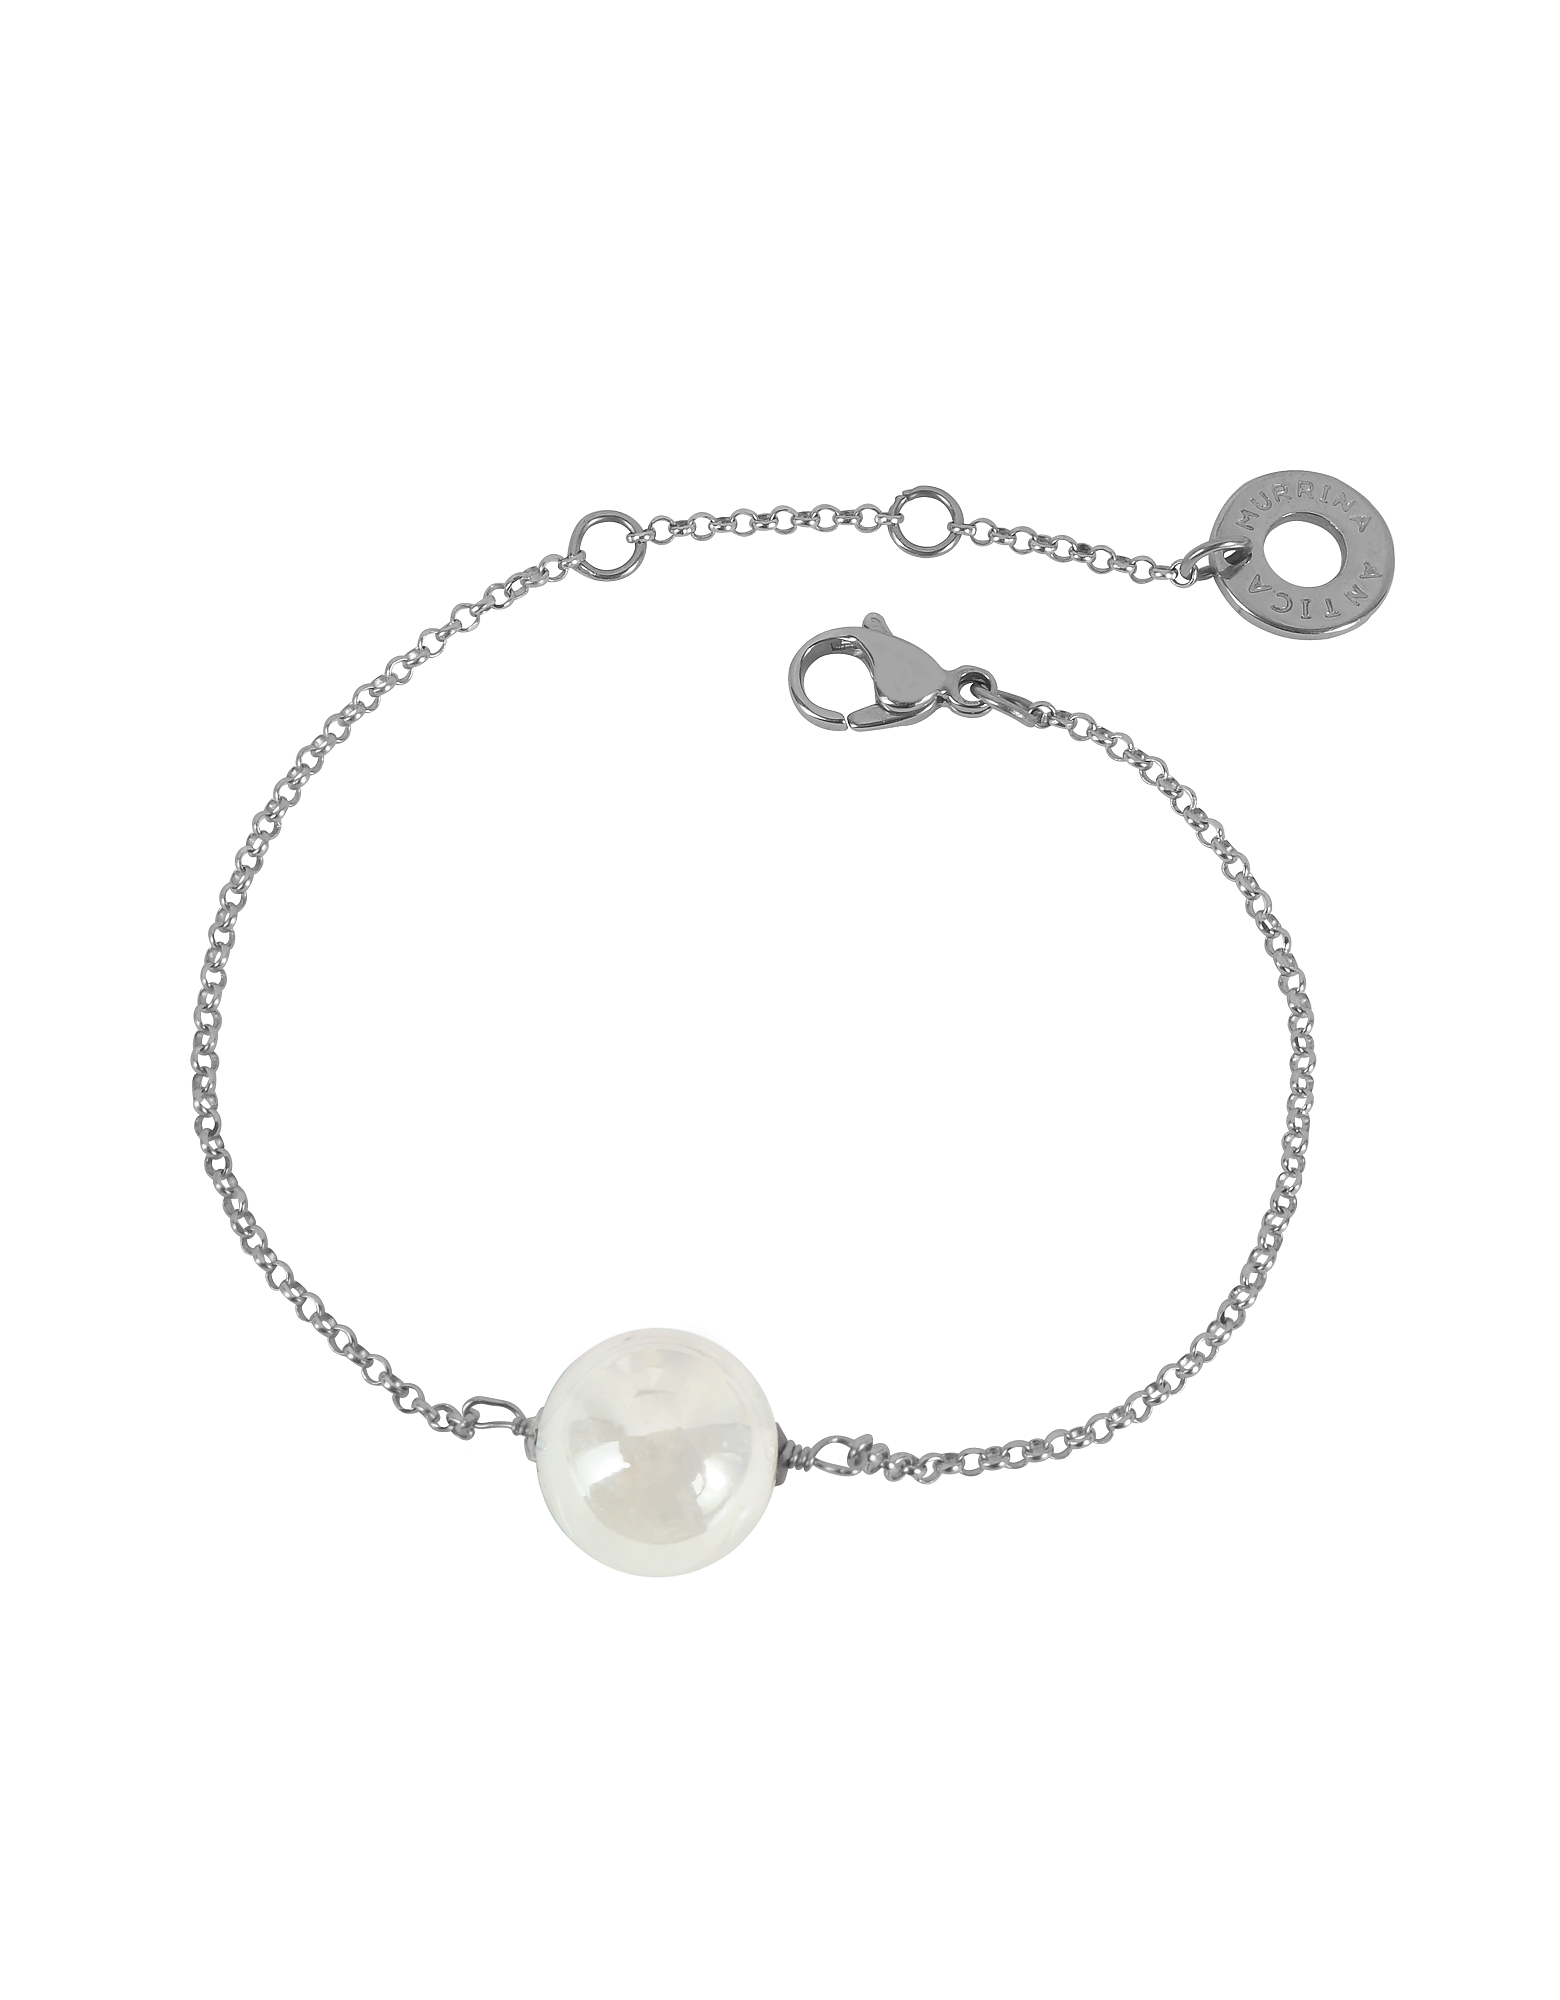 Antica Murrina Bracelets, Perleadi White Murano Glass Bead Chain Bracelet